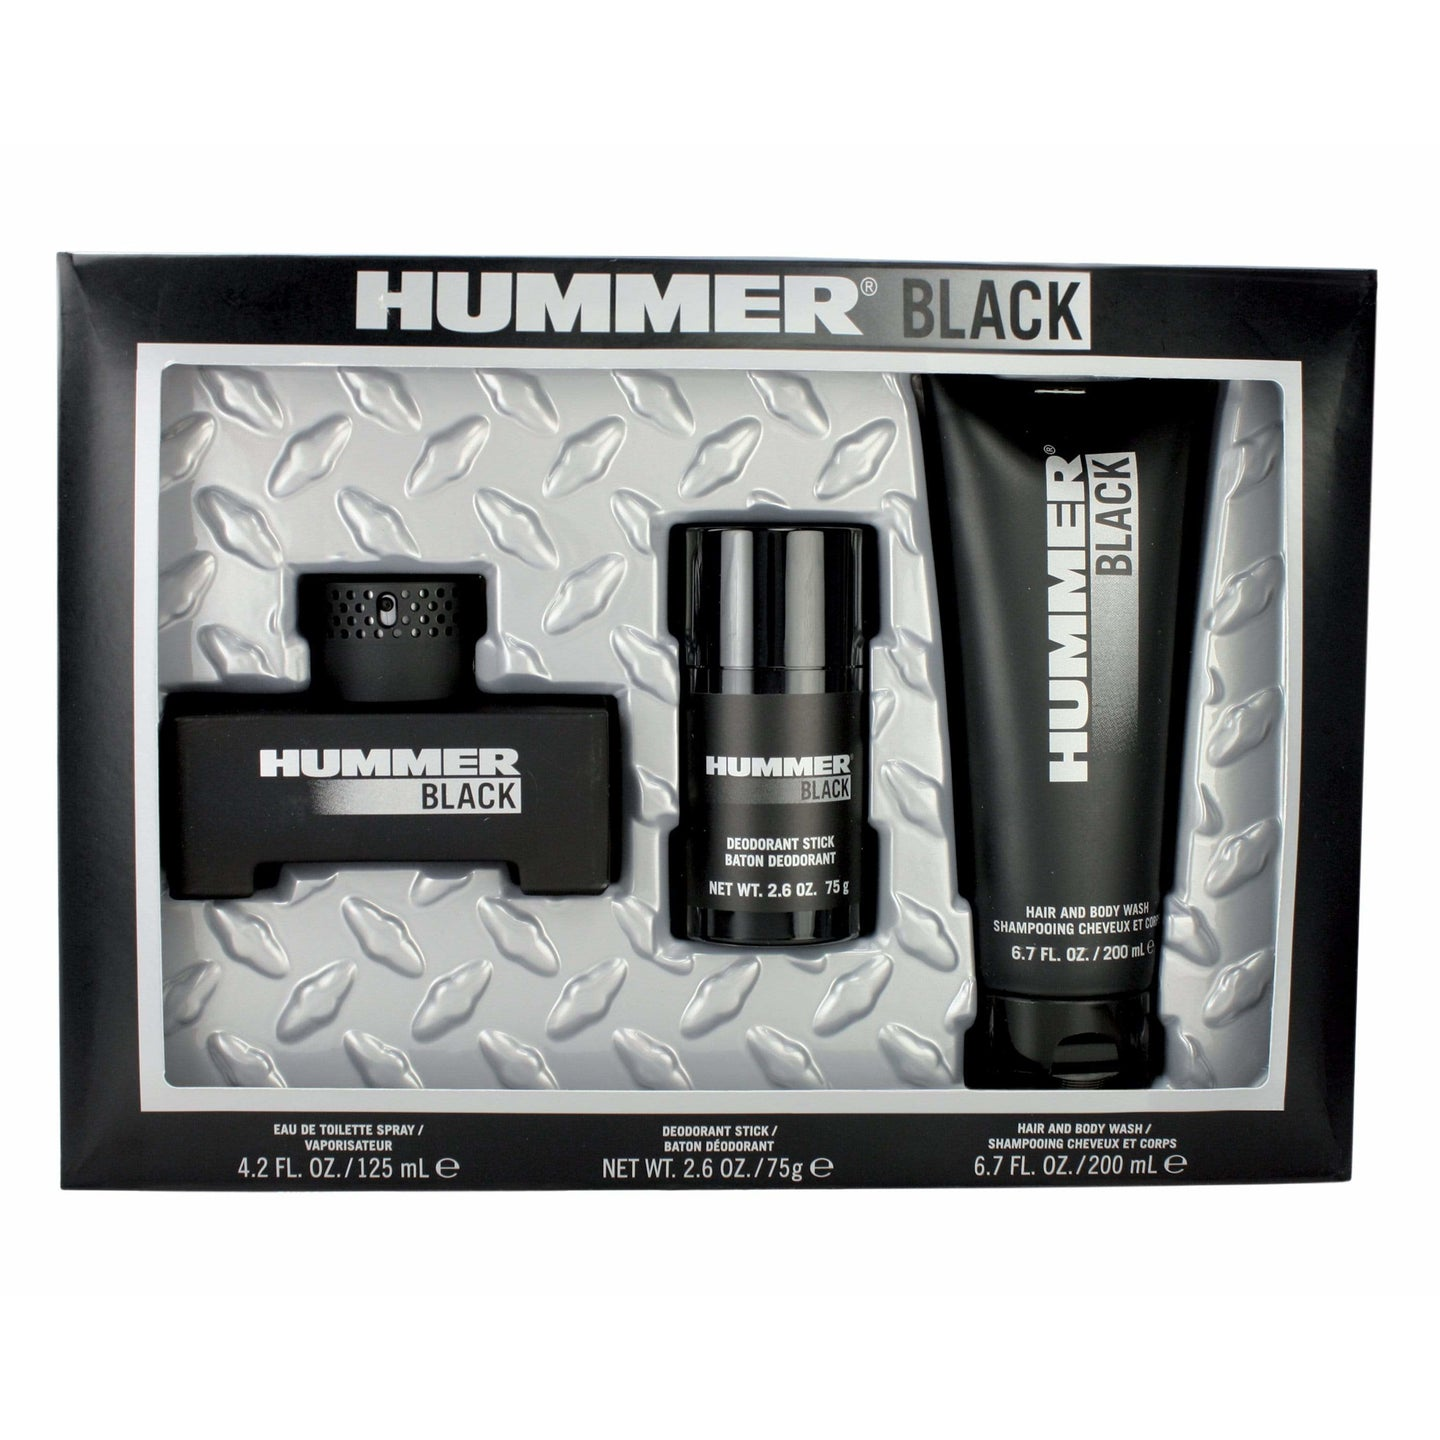 HUMMER BLACK 3 pc VALUE PACK